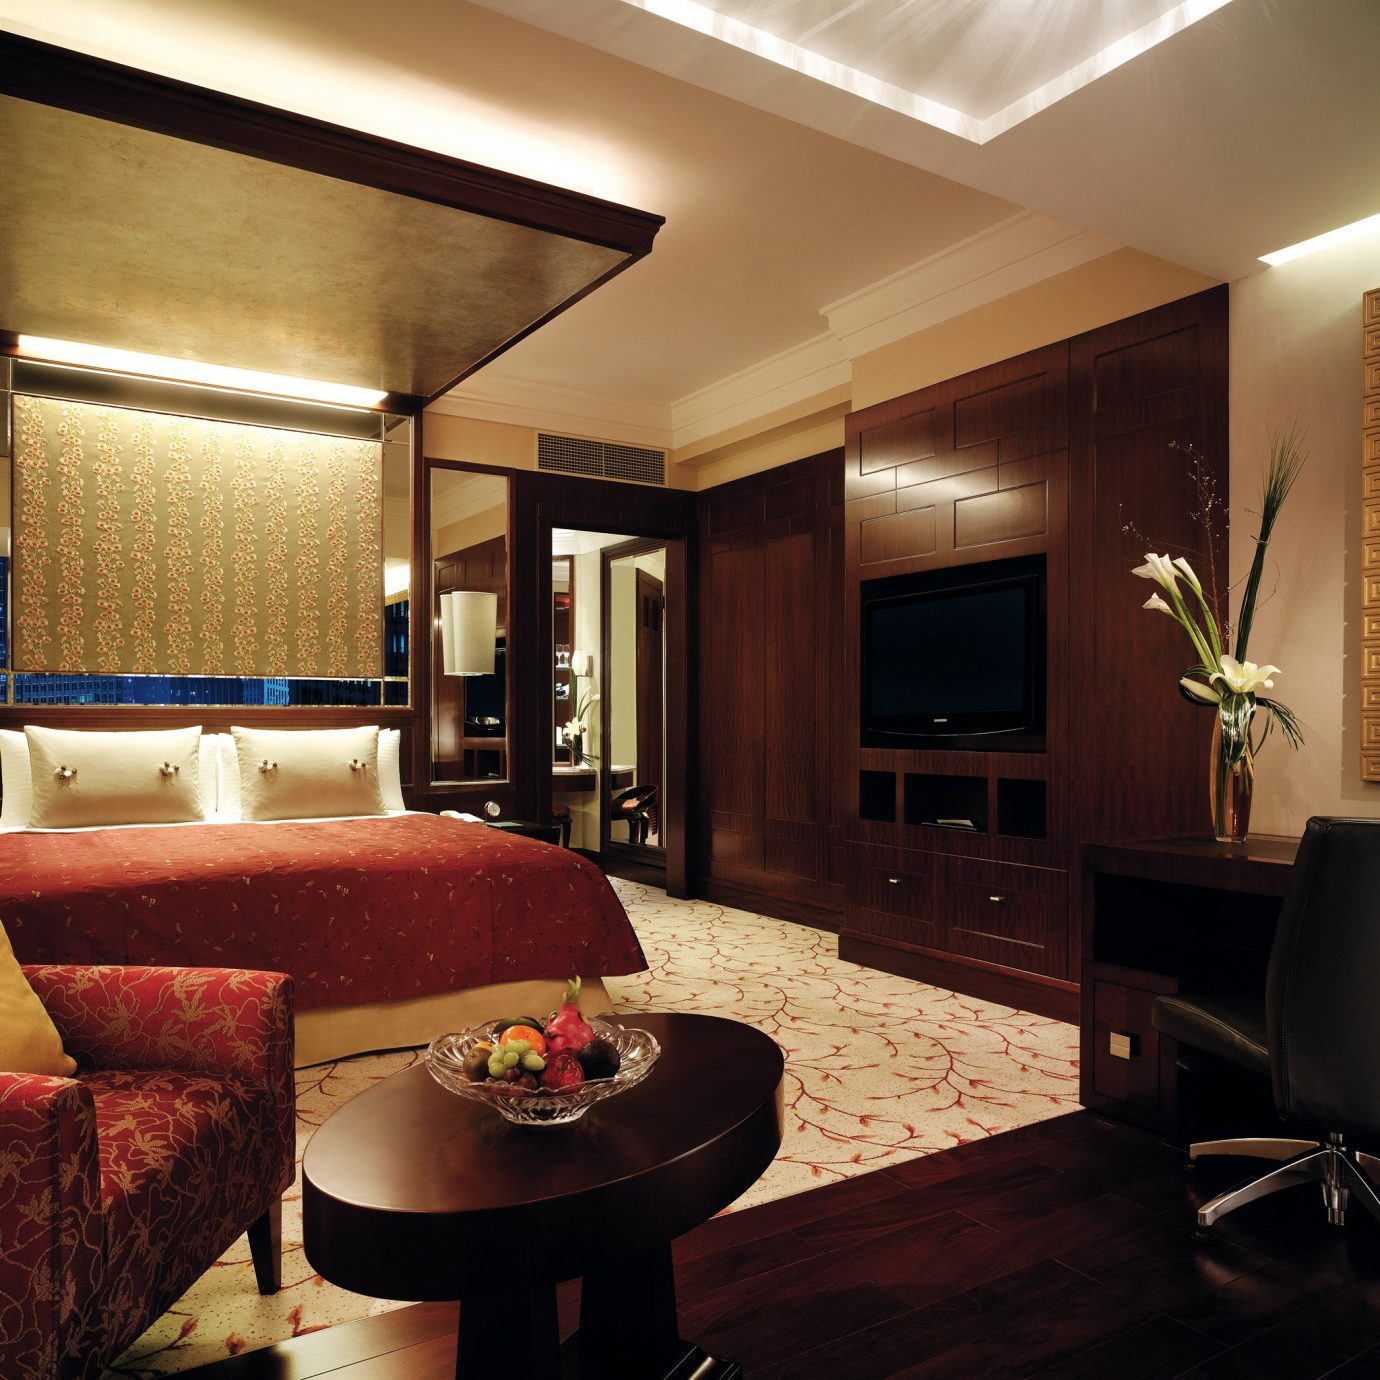 Bedroom Elegant Hip Luxury Suite sofa property living room home condominium recreation room Lobby